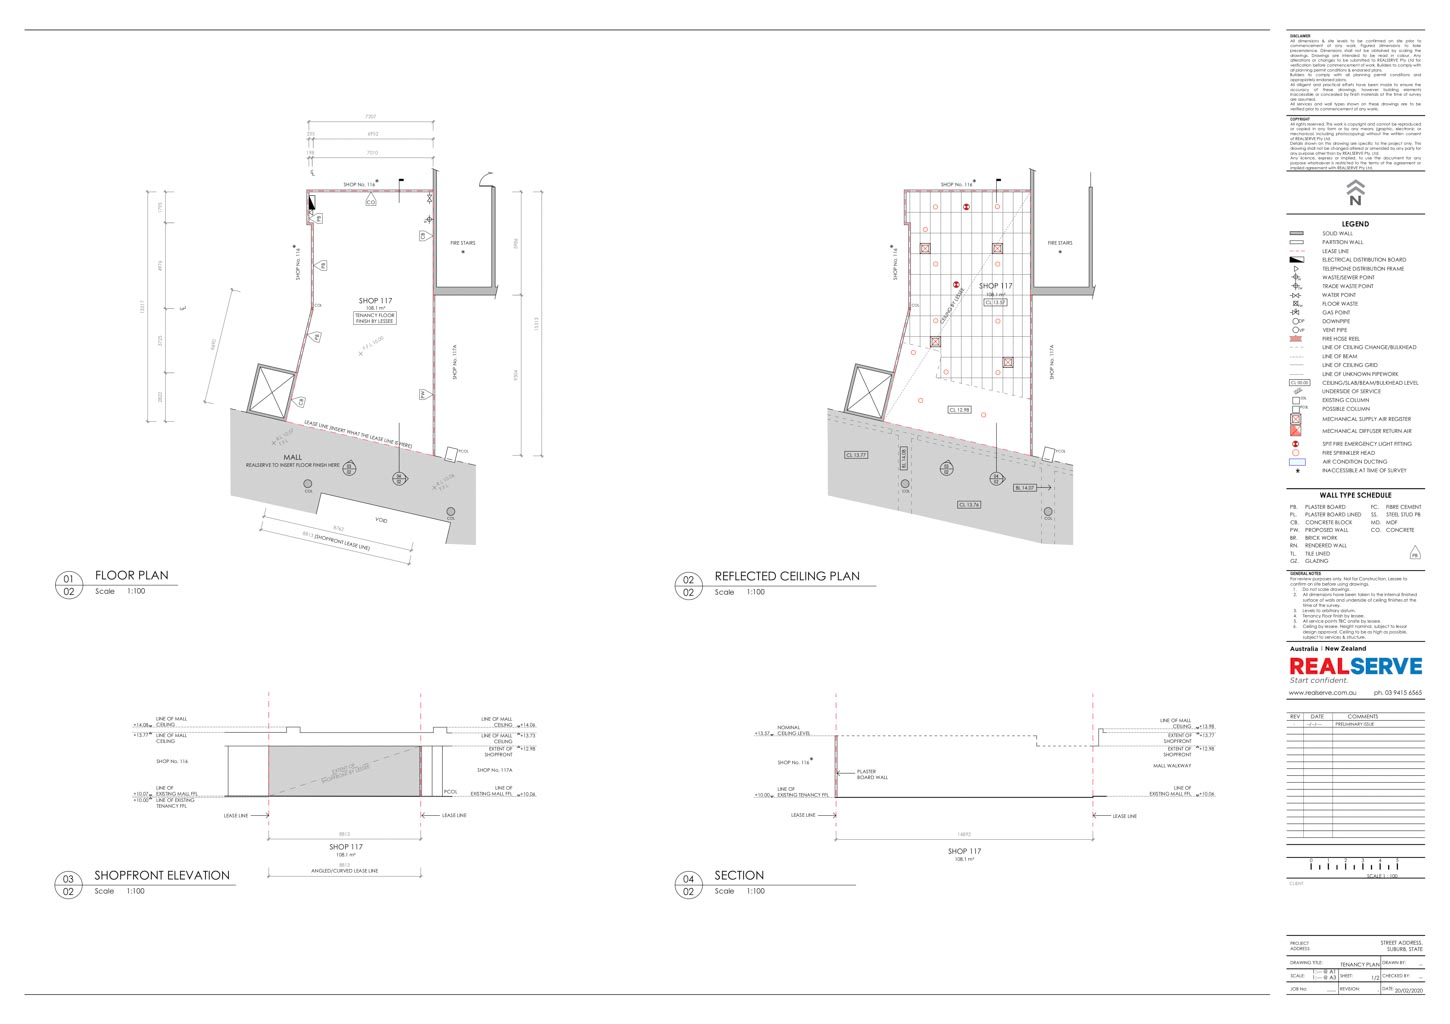 REALSERVE GENERAL TENANCY PLAN WITH REFLECTED CEILING PLAN SAMPLE